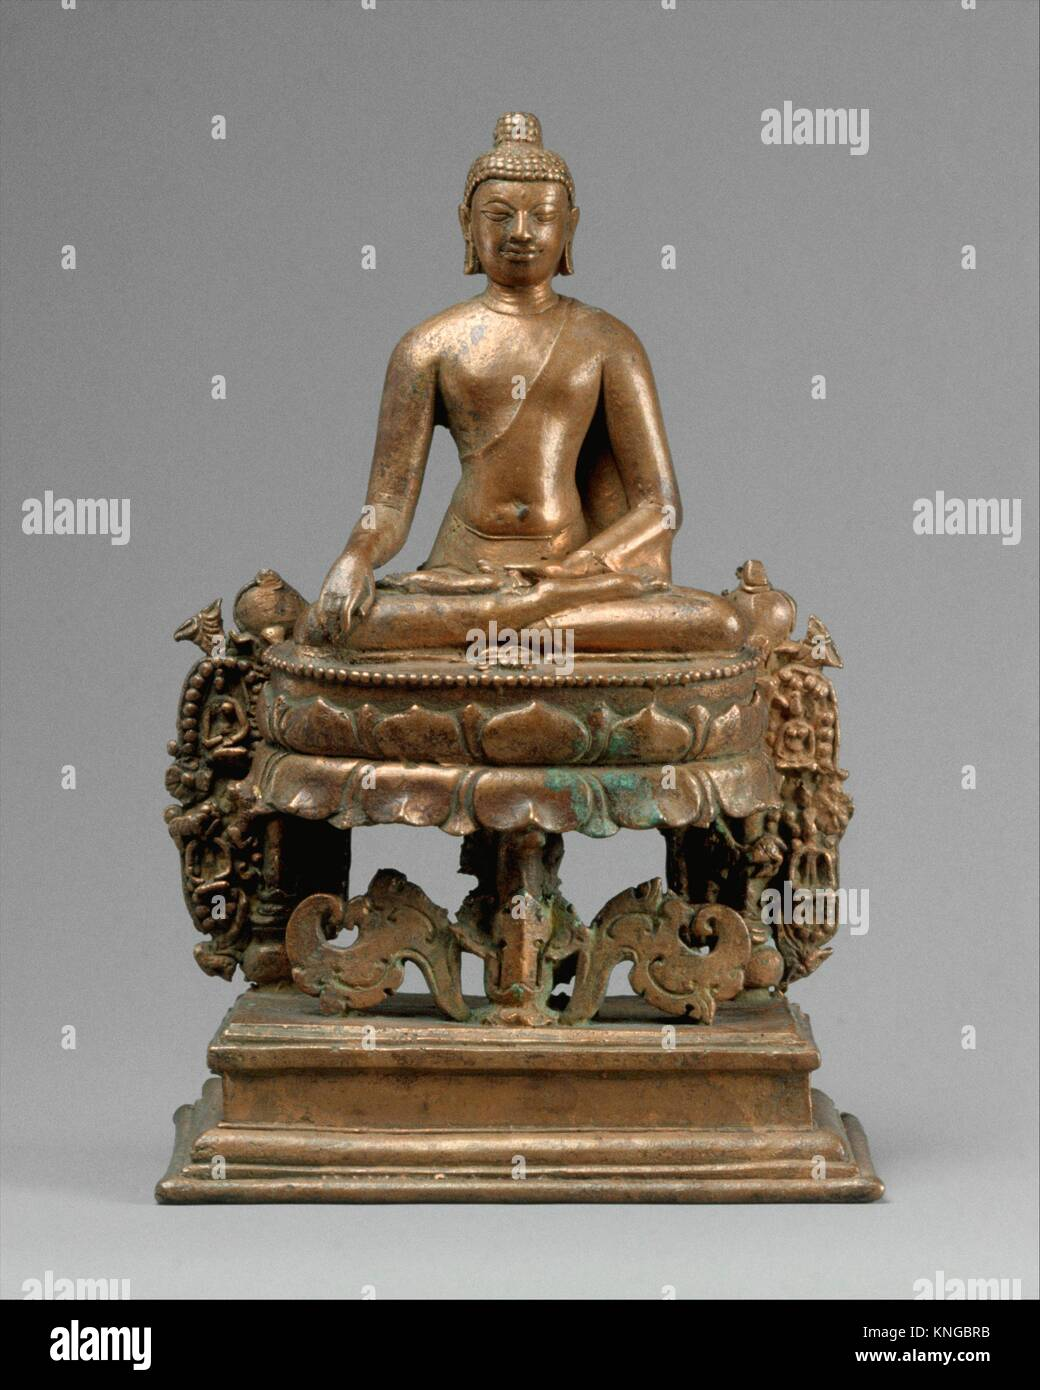 Lotus-Enthroned Buddha Akshobhya, the Transcendent Buddha. Period: Pala period; Date: 8th-early 9th century; Culture: - Stock Image